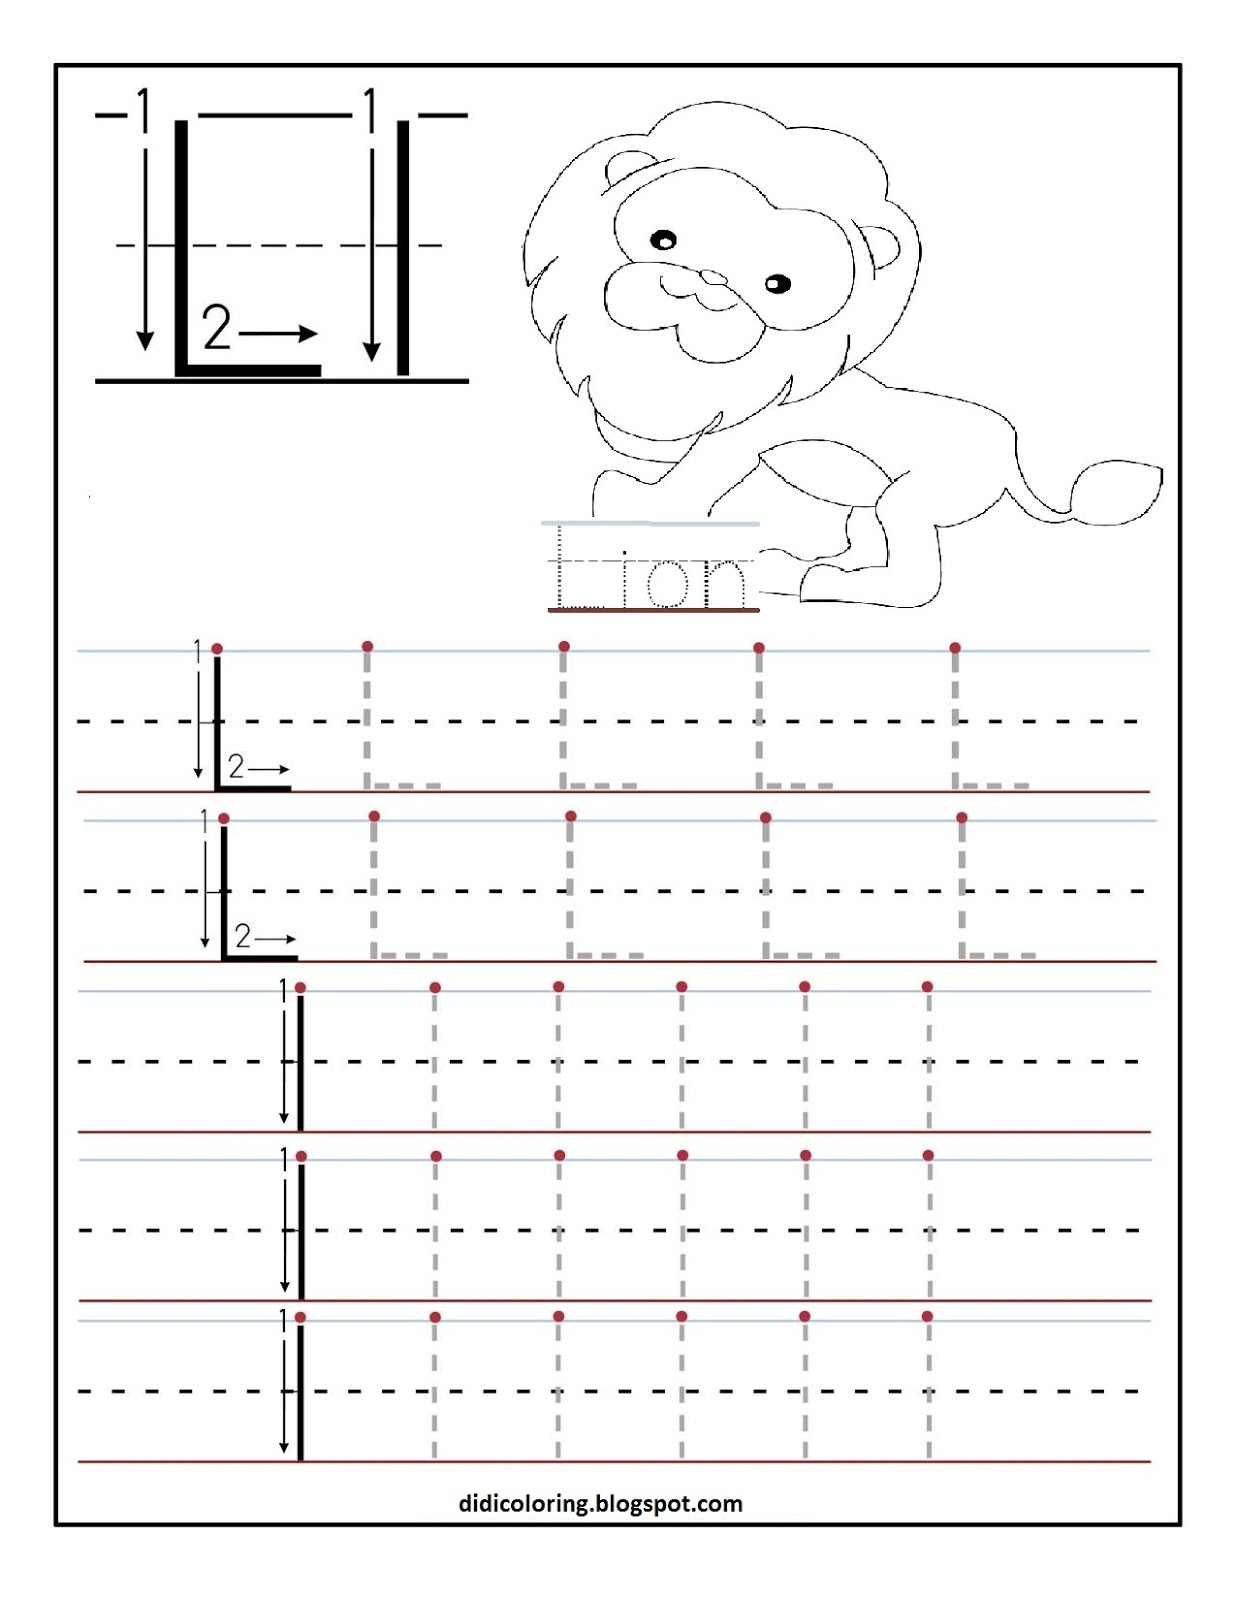 free printable worksheet letter l for your child to learn